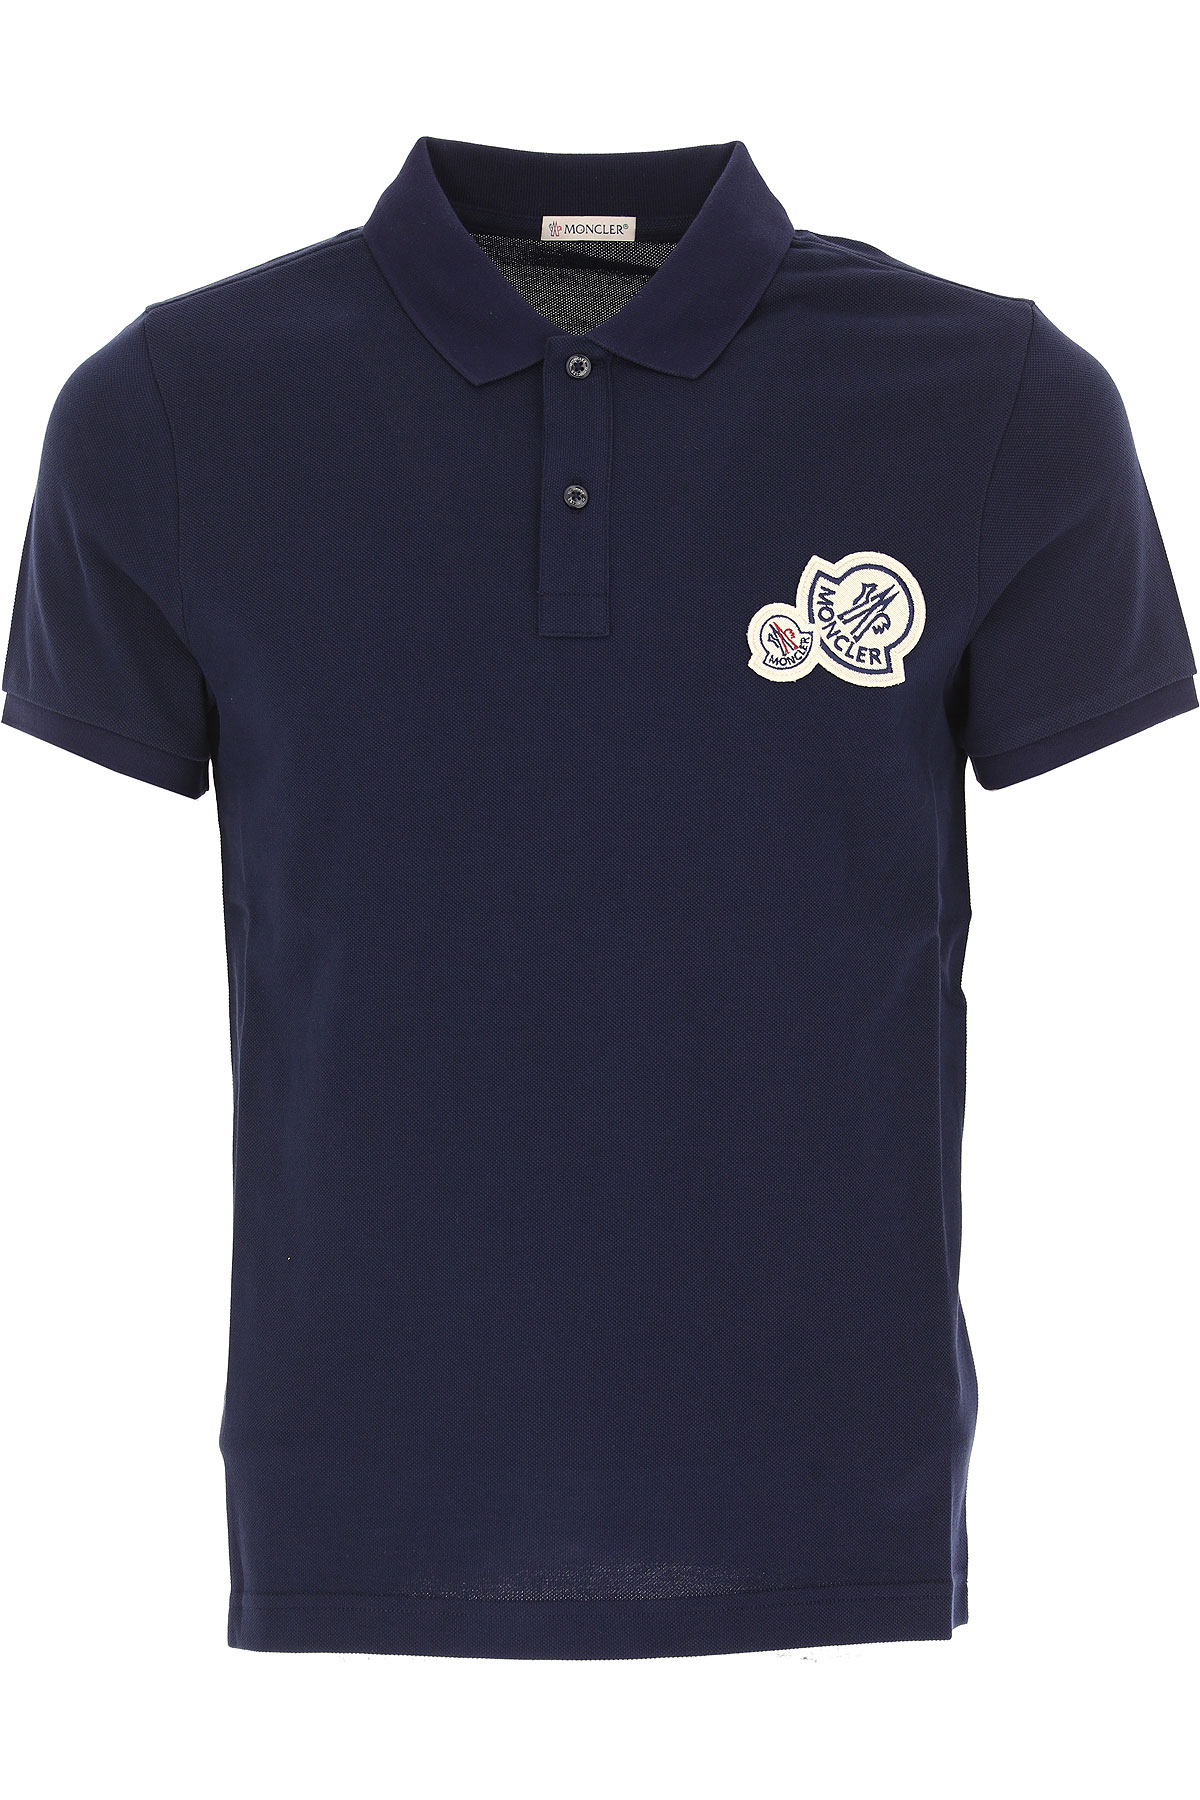 Image of Moncler Polo Shirt for Women, Navy Blue, Cotton, 2017, L M XL